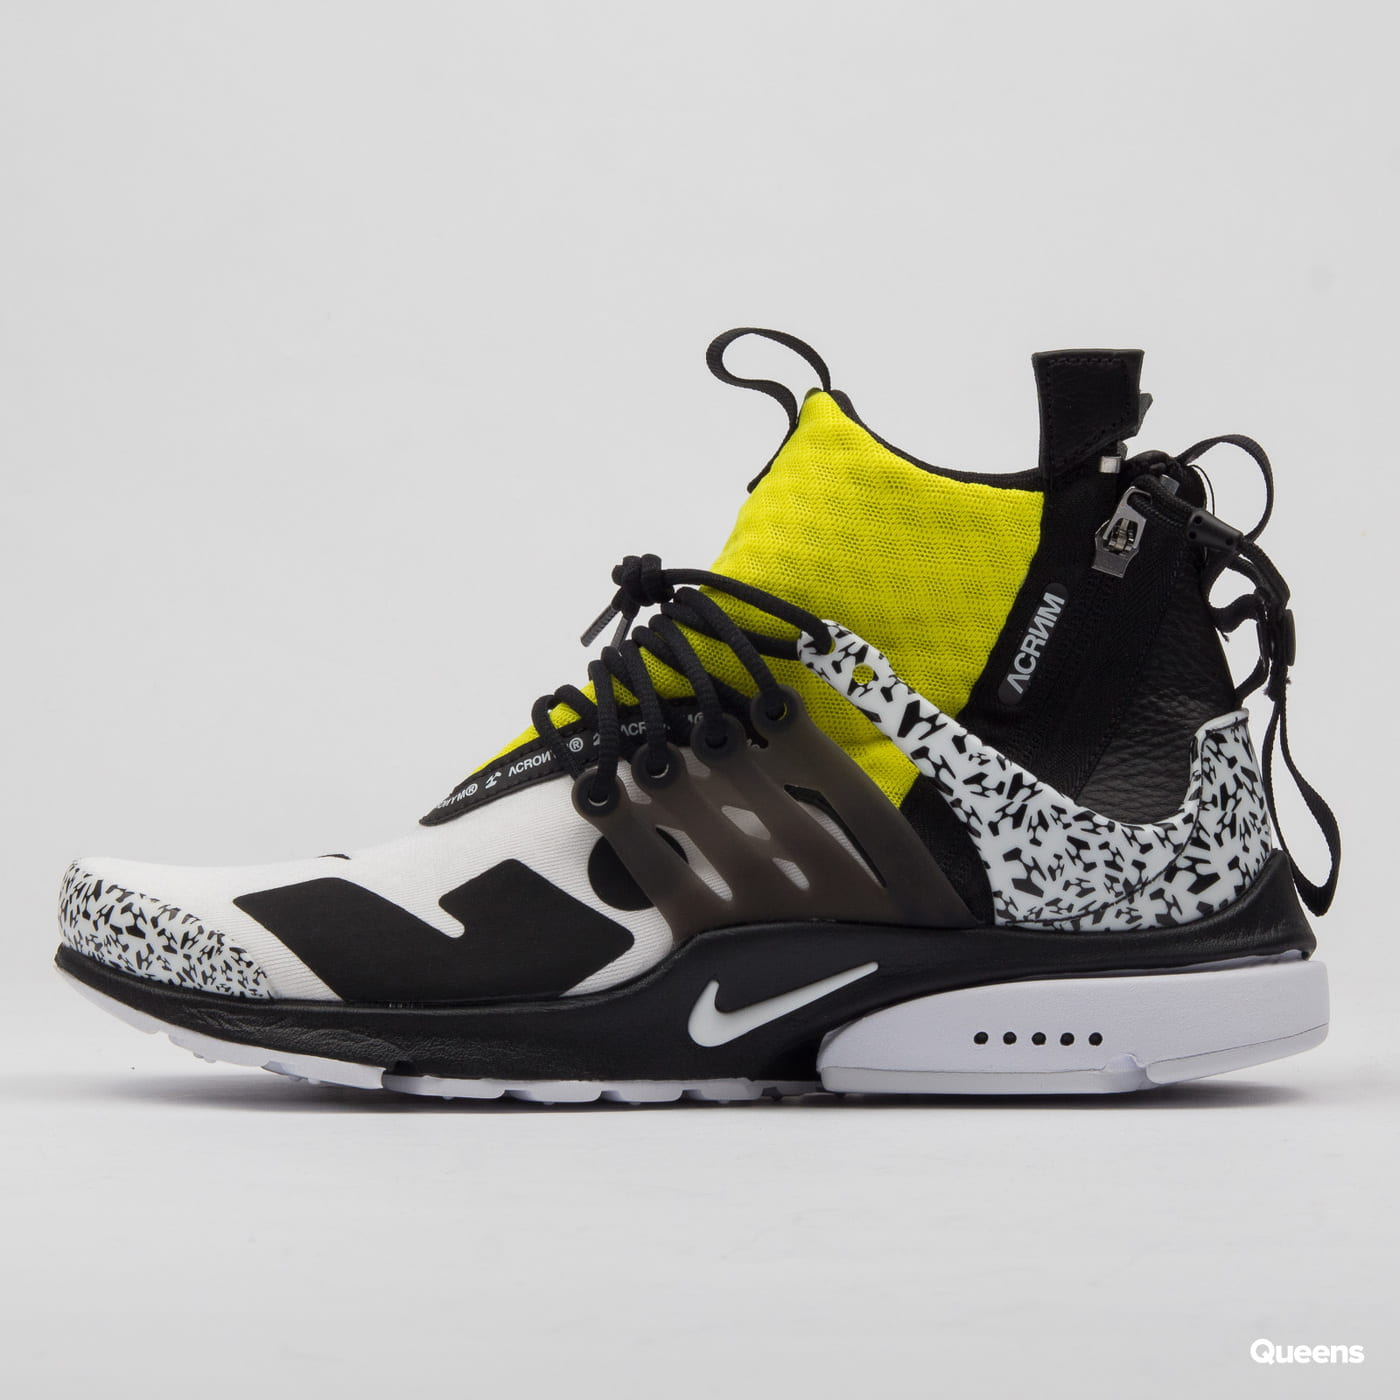 Nike Air Presto Mid Acronym white black dynamic yellow